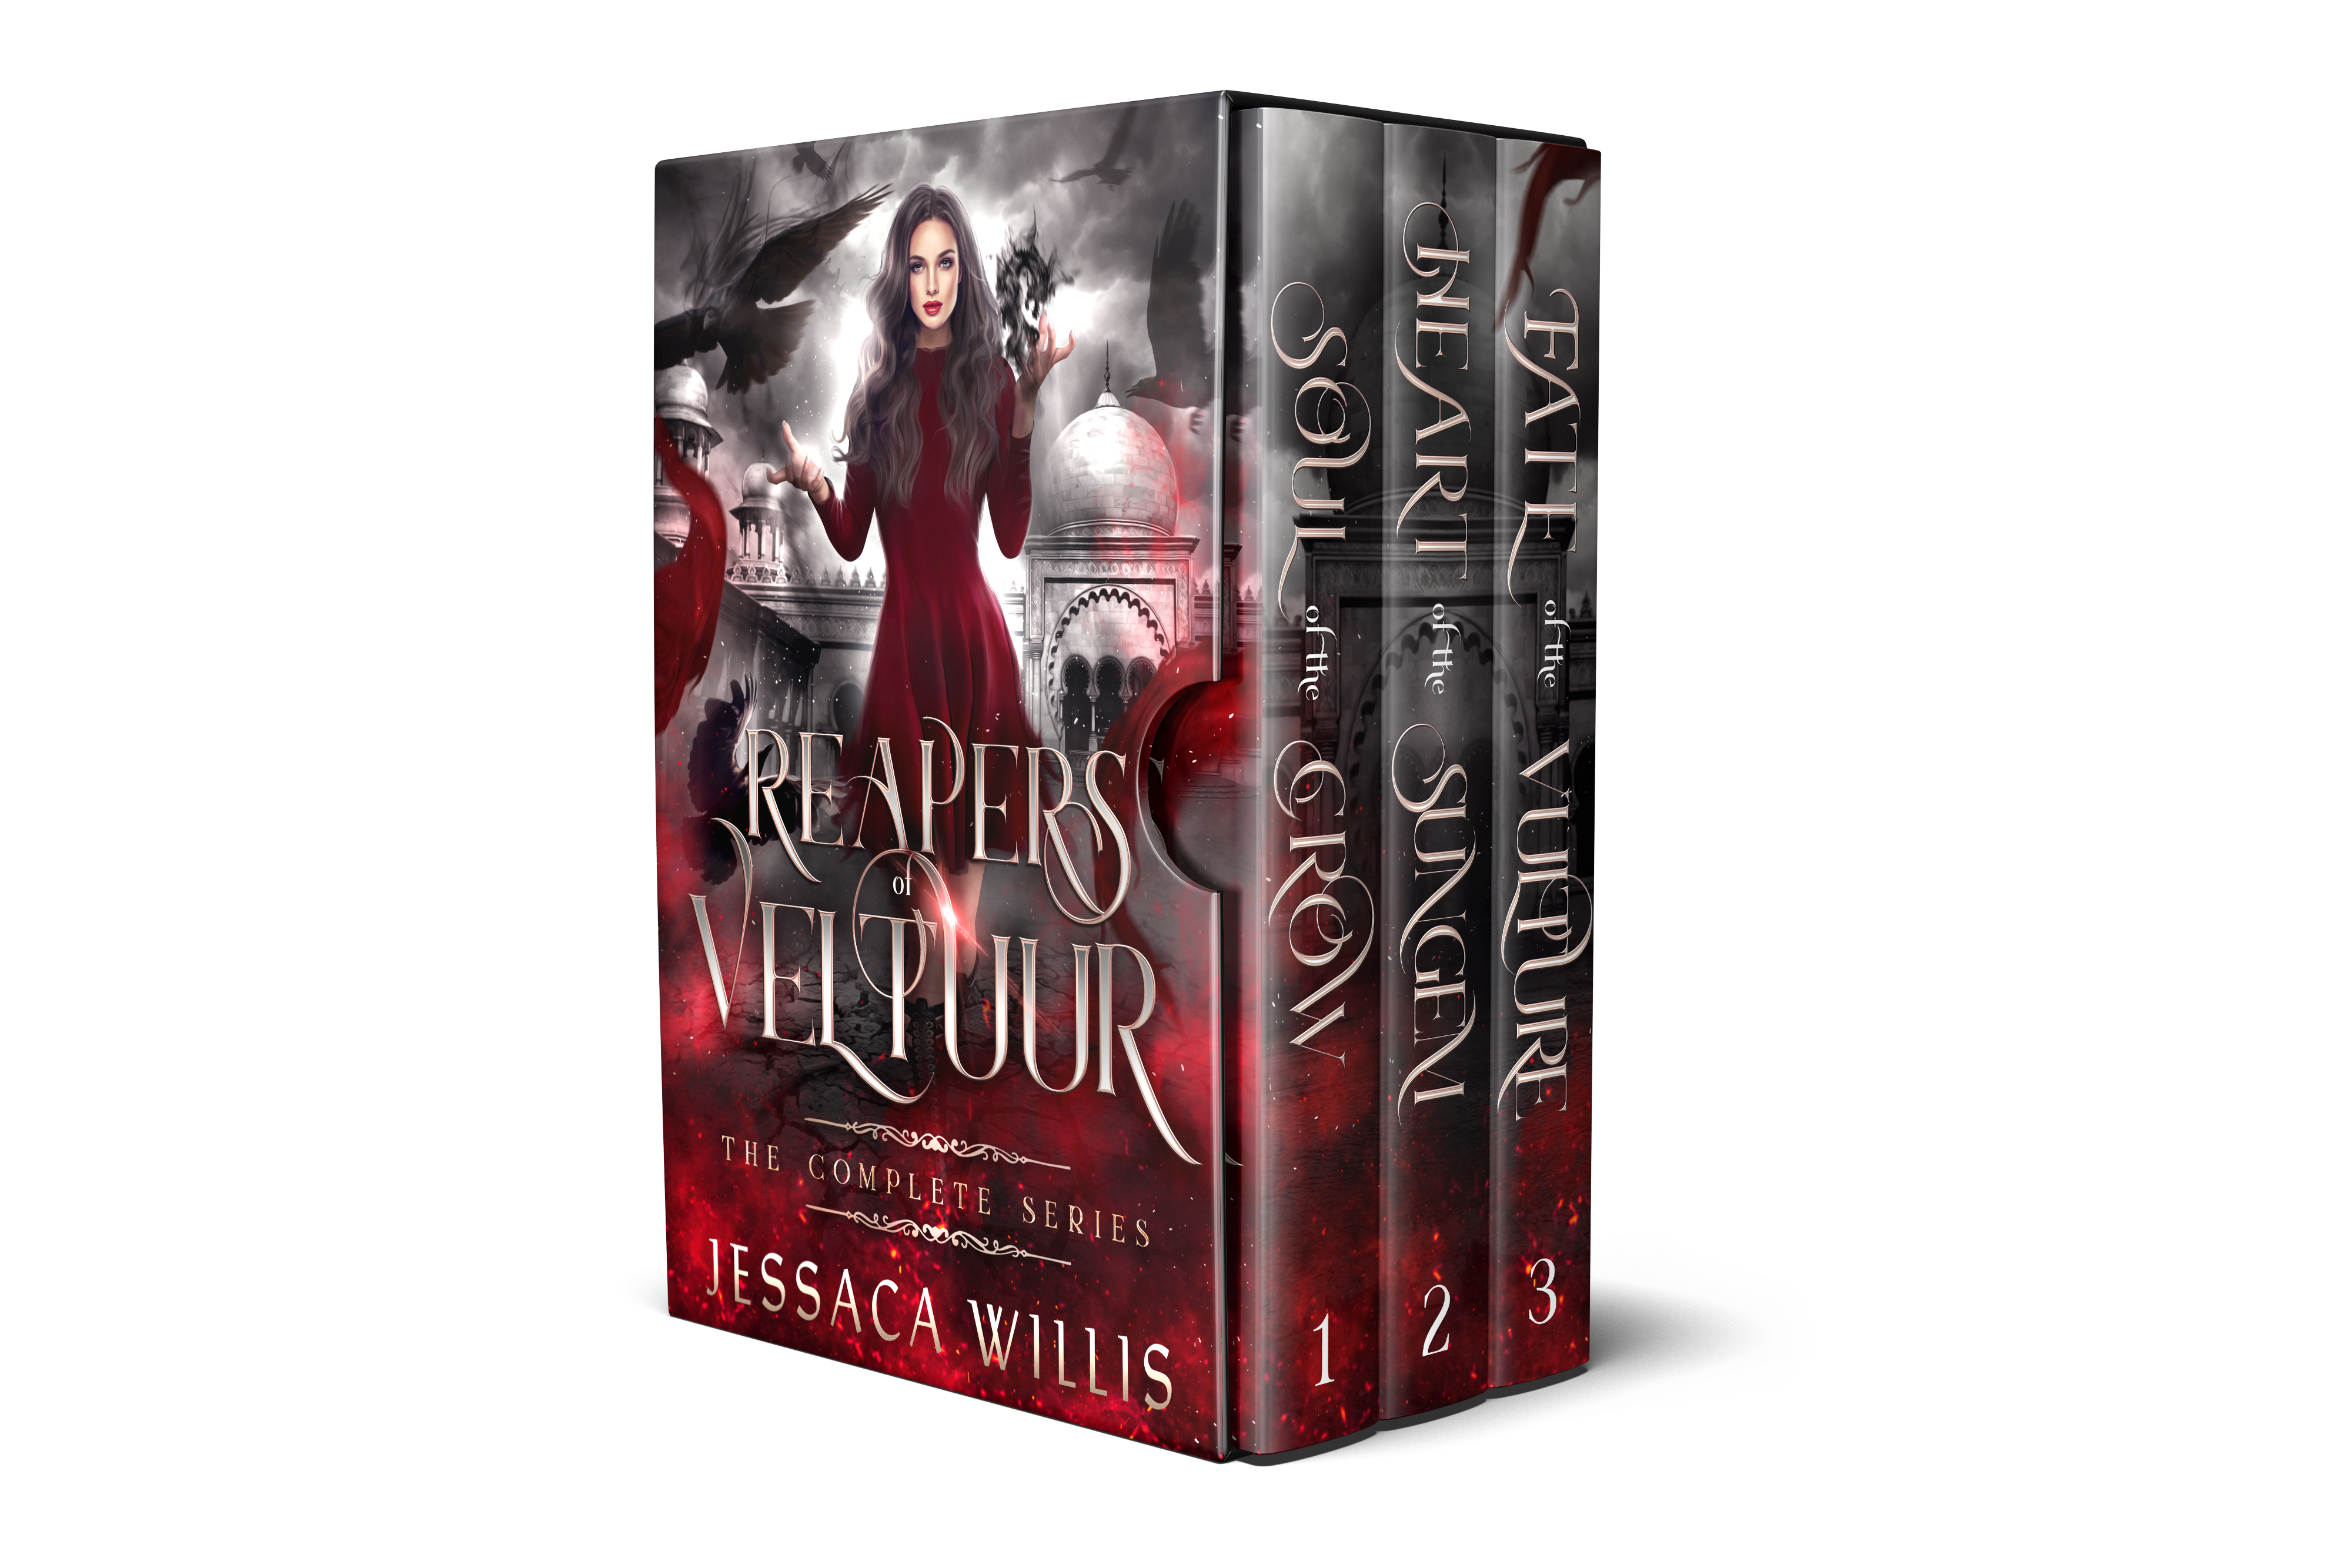 Reapers of Veltuur (Complete Series)